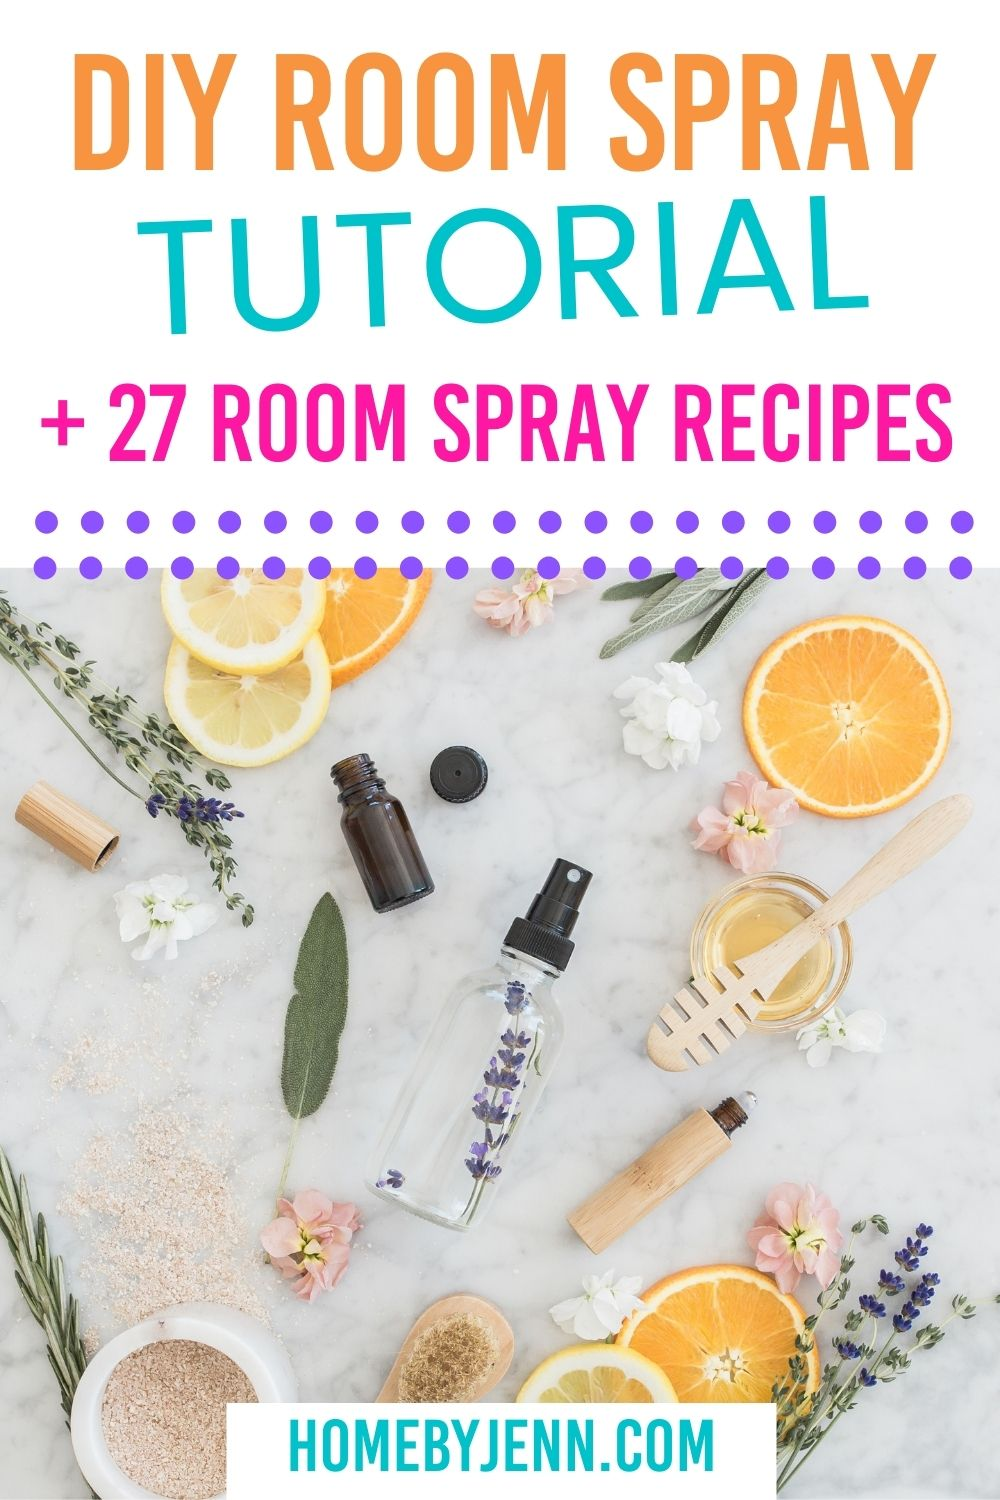 diy room spray on a counter with lemons and oranges and lavender via @homebyjenn